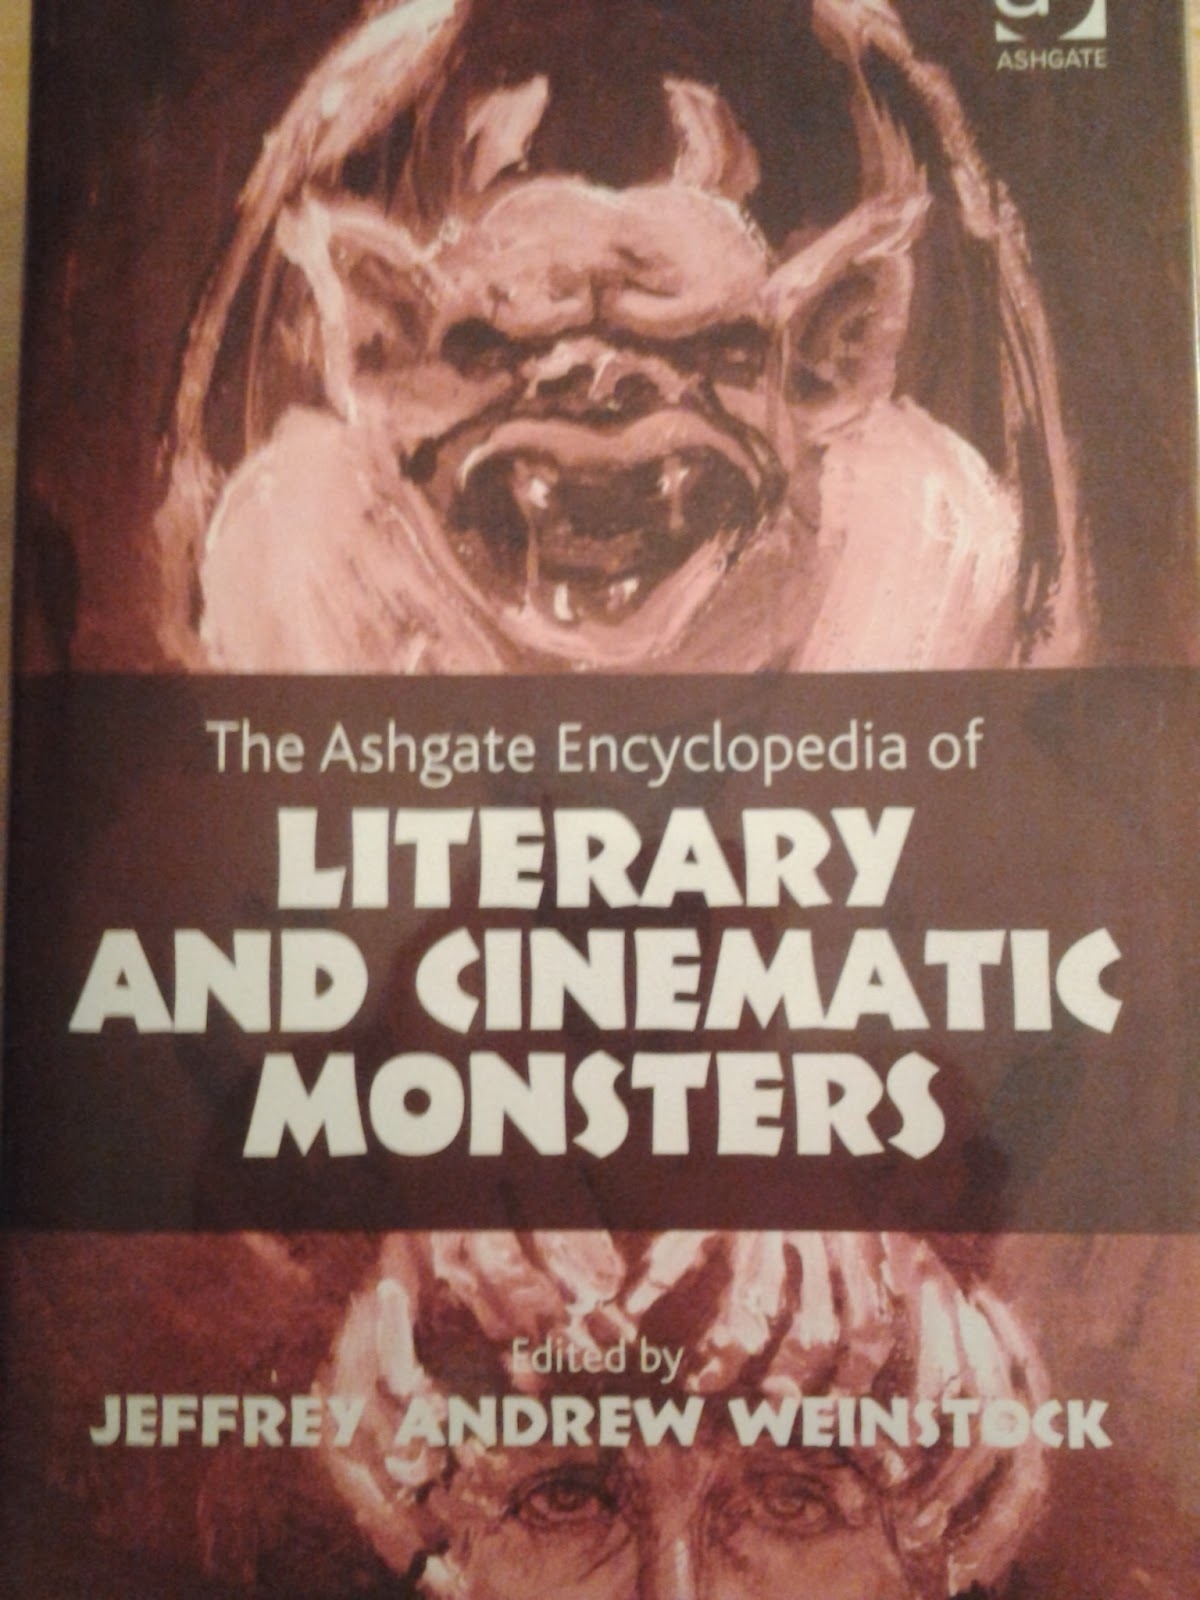 The Ashgate Encyclopedia of Literary and Cinematic Monsters, ed by Dr. Jeffrey Weinstock from Ashgate Publishing Ltd